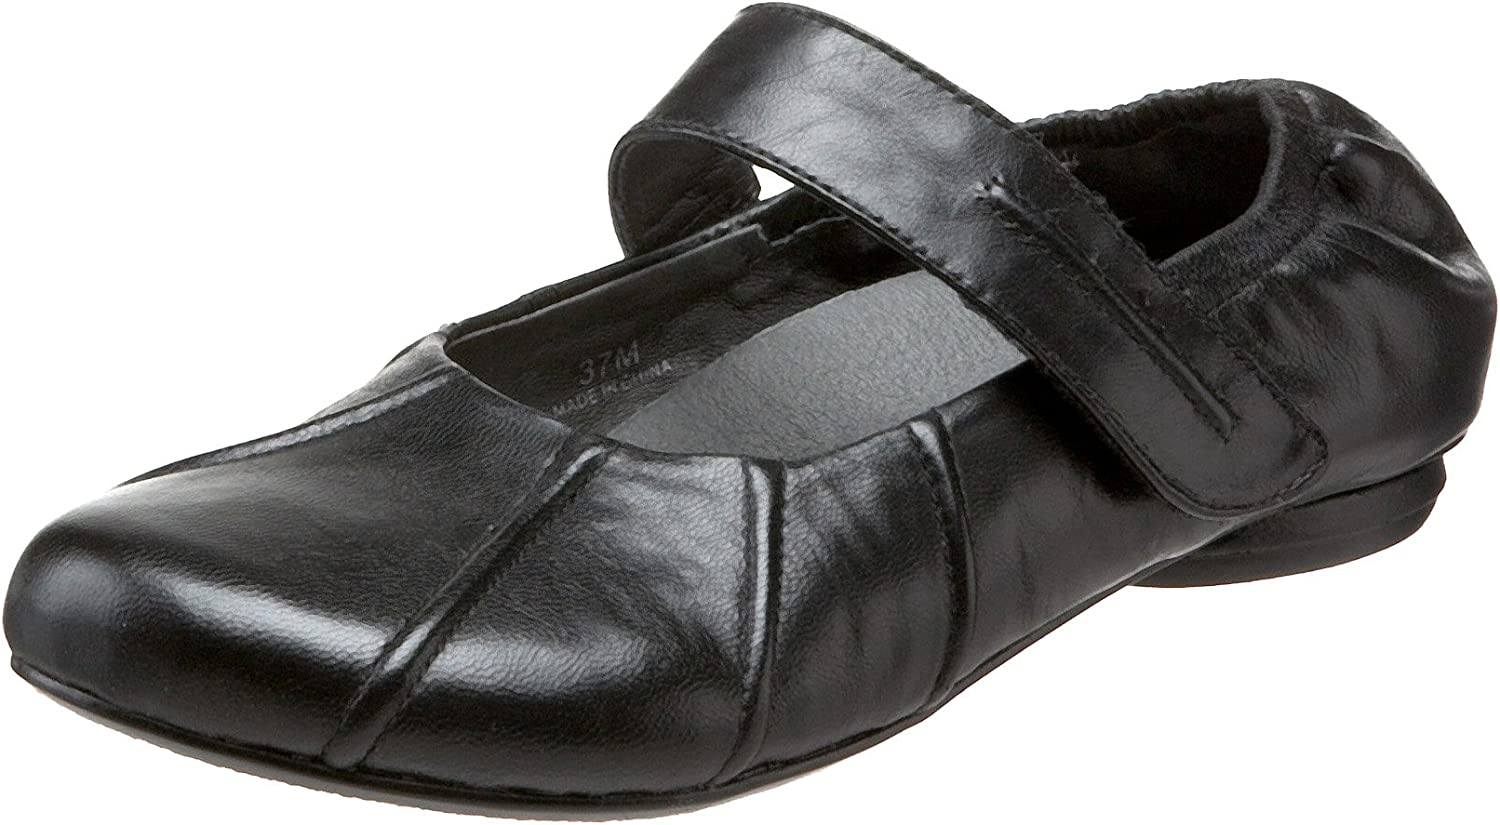 Portlandia Women's Beagreenon Mary Jane Flat